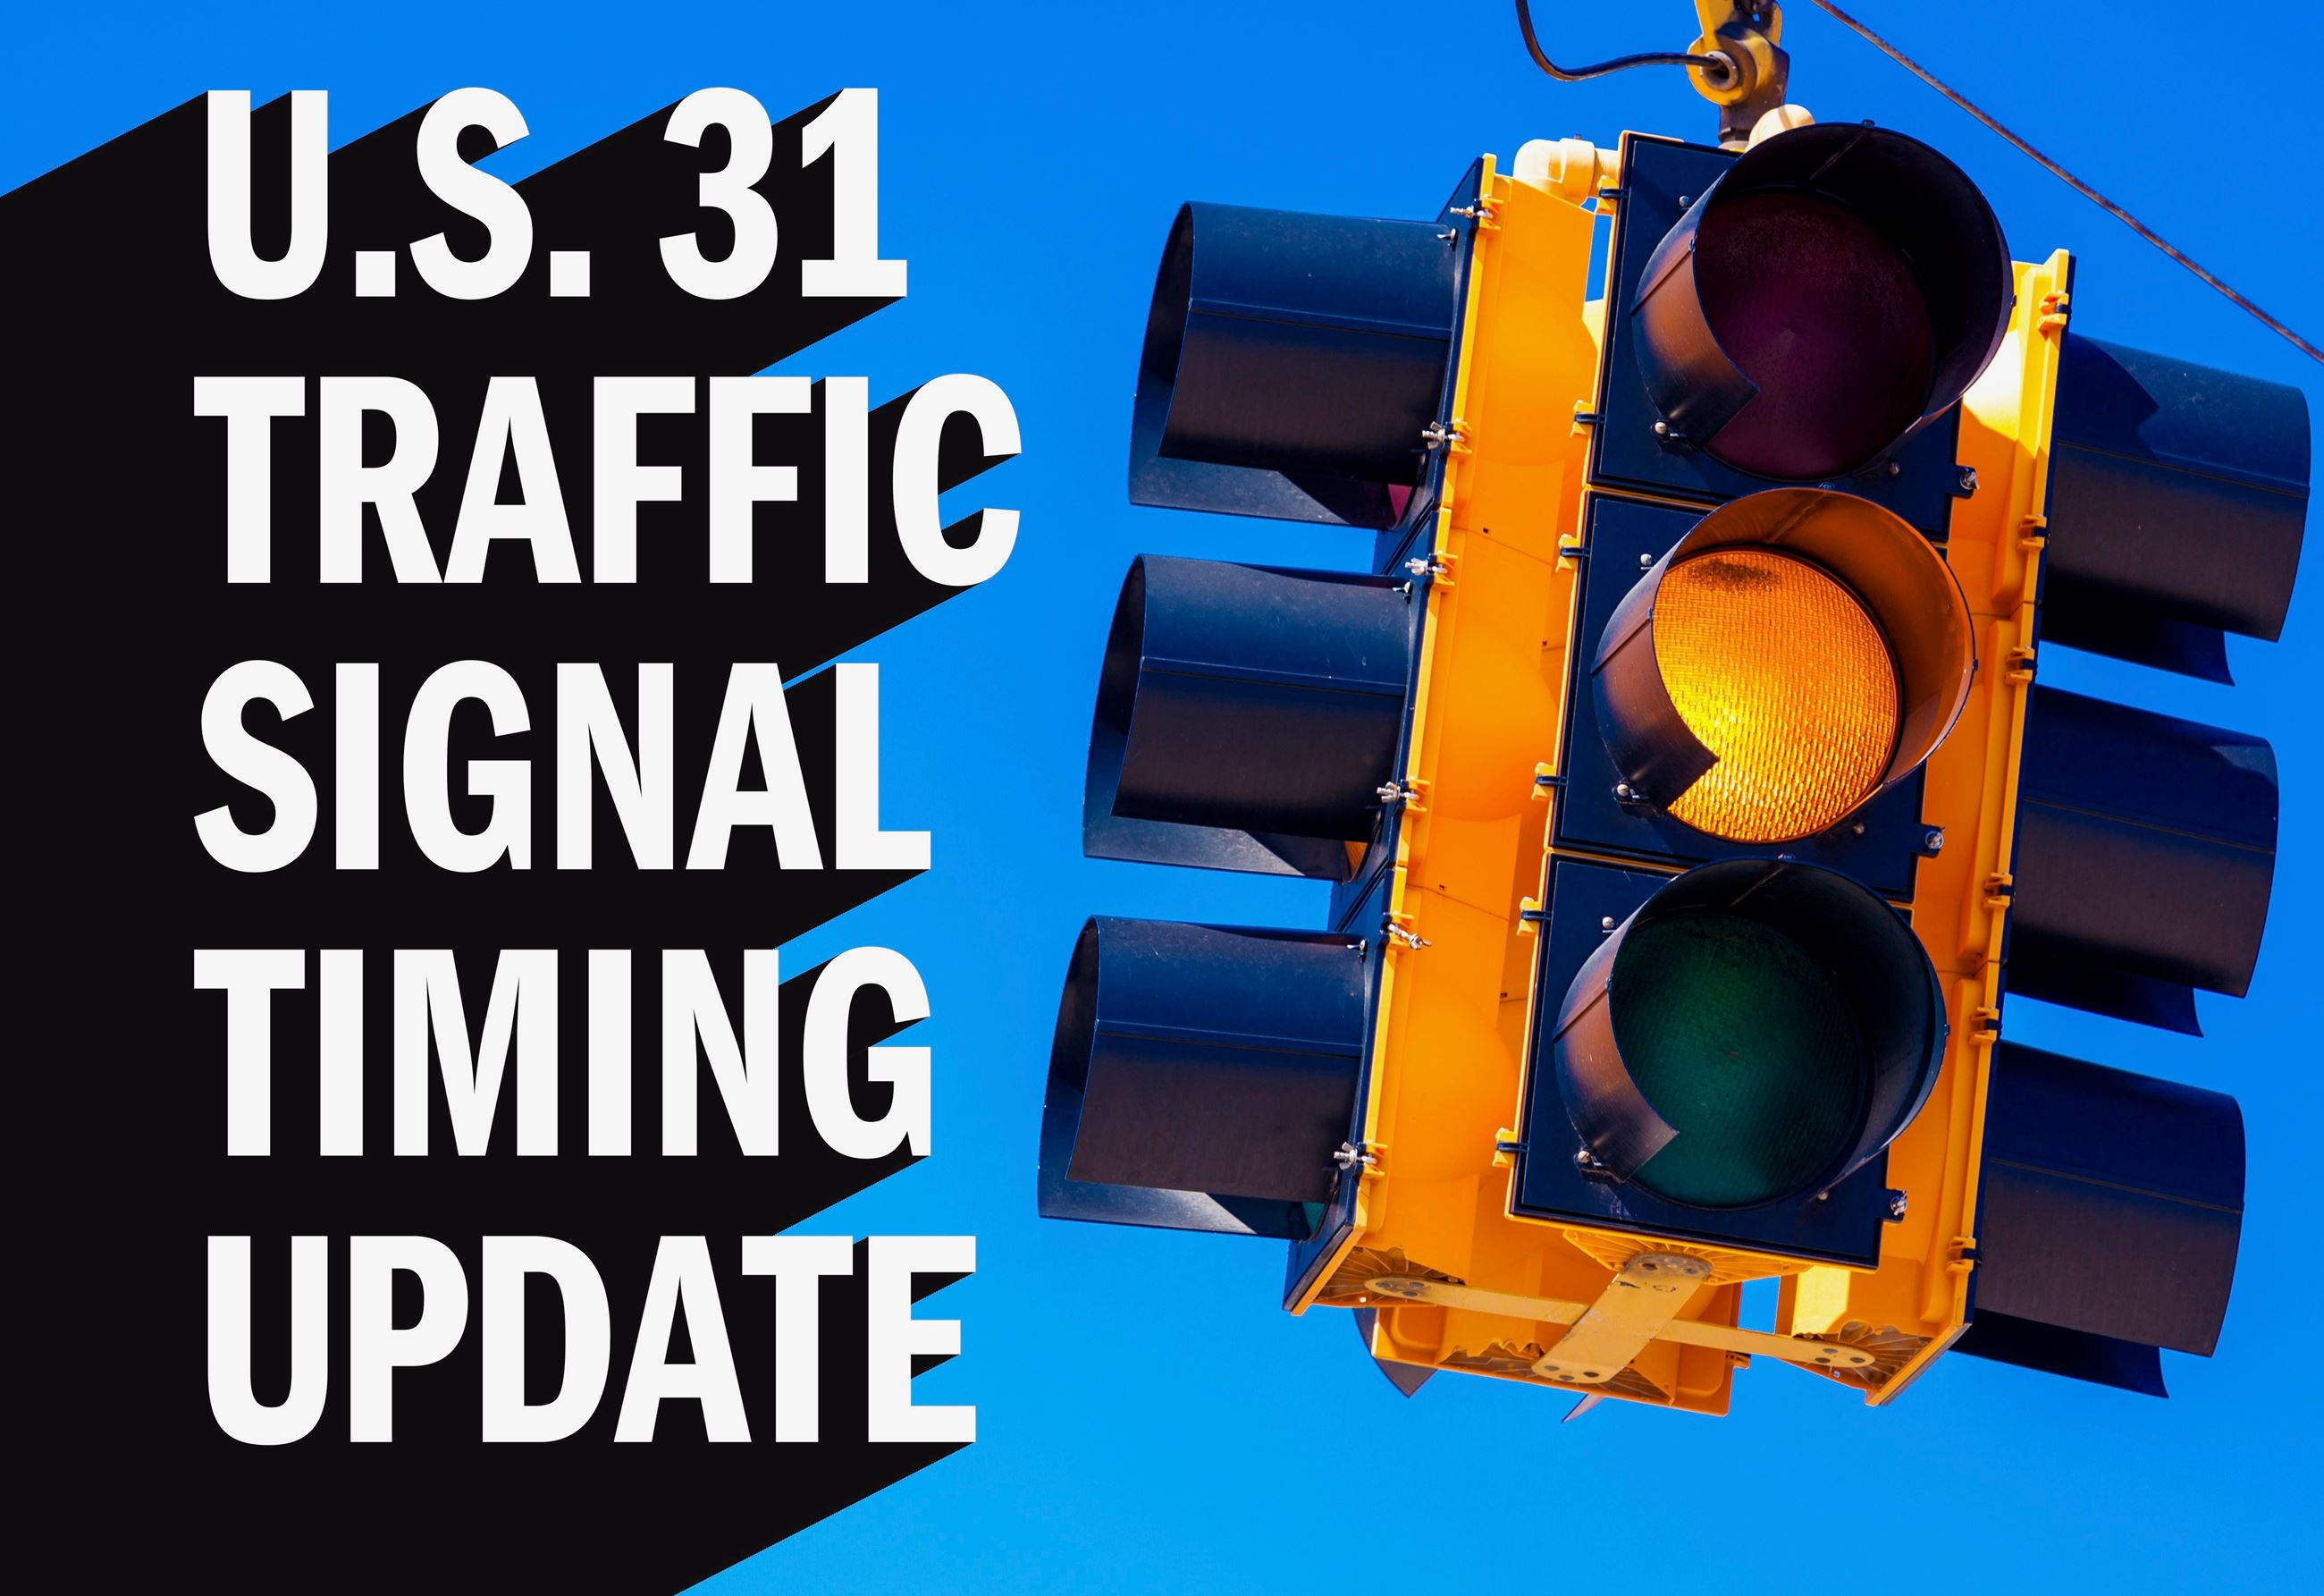 U.S. 31 Traffic Signal Timing Update